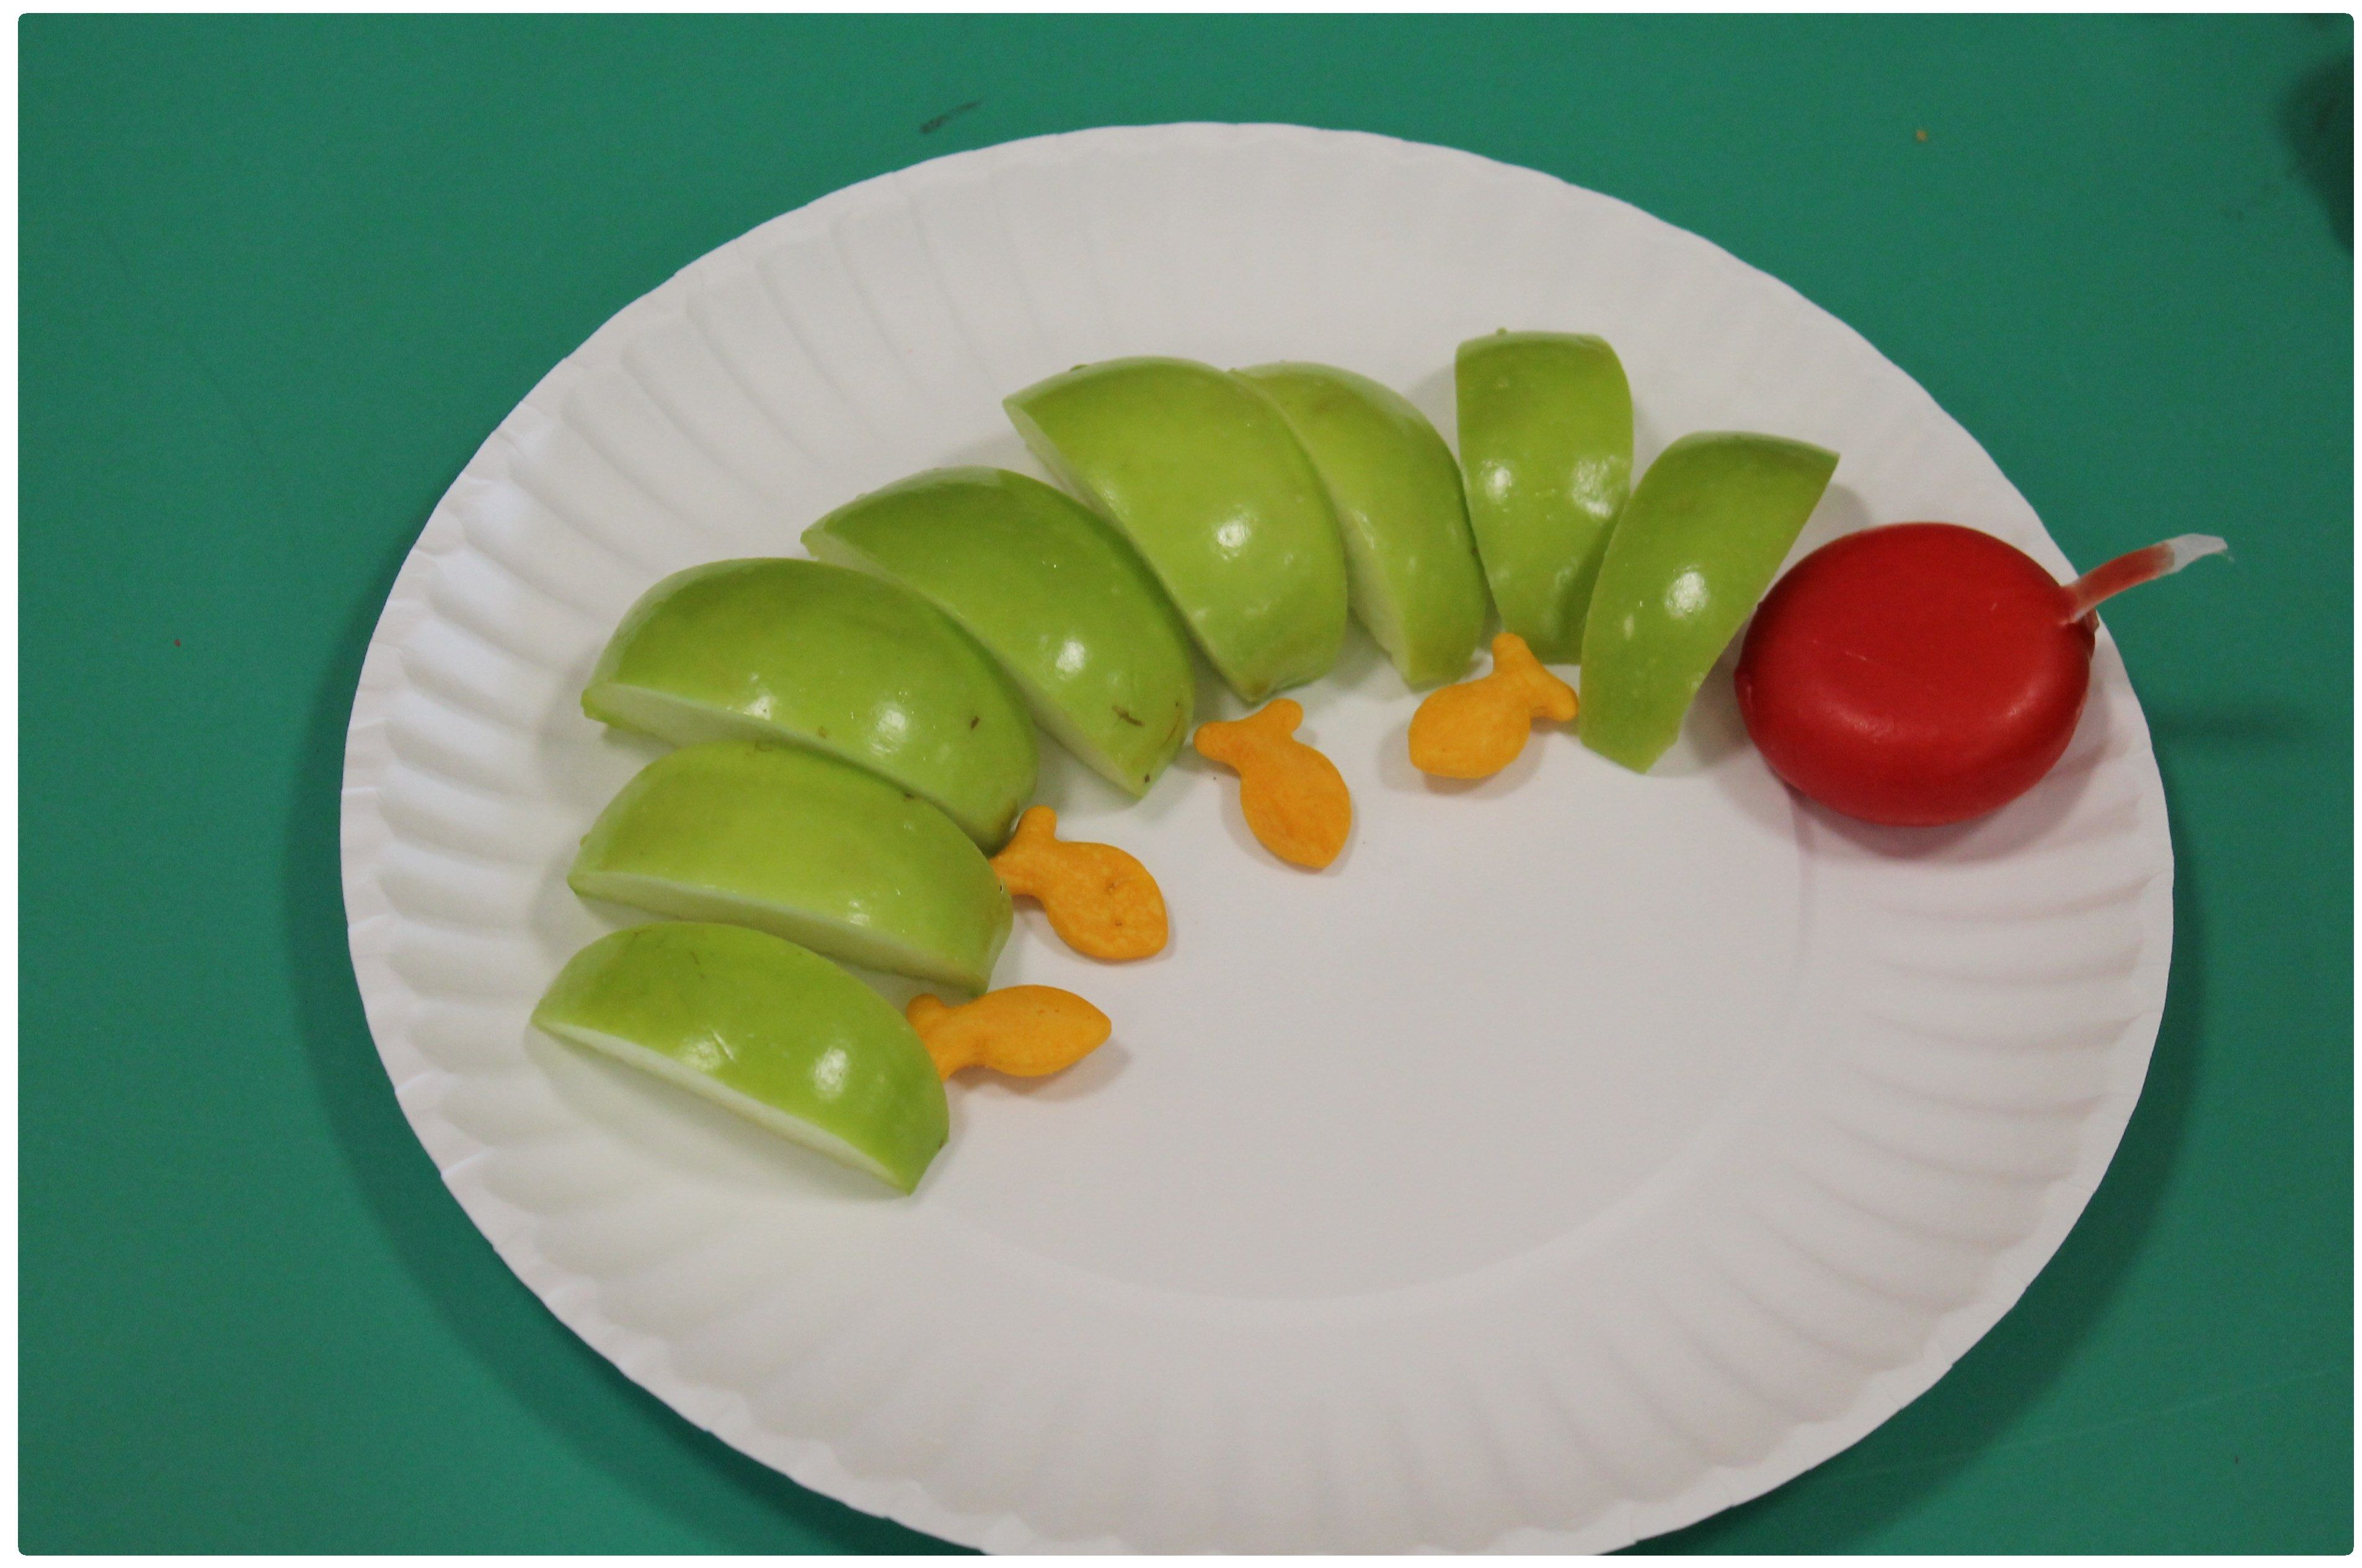 The Very Hungry Caterpillar Snack - green apples, goldfish